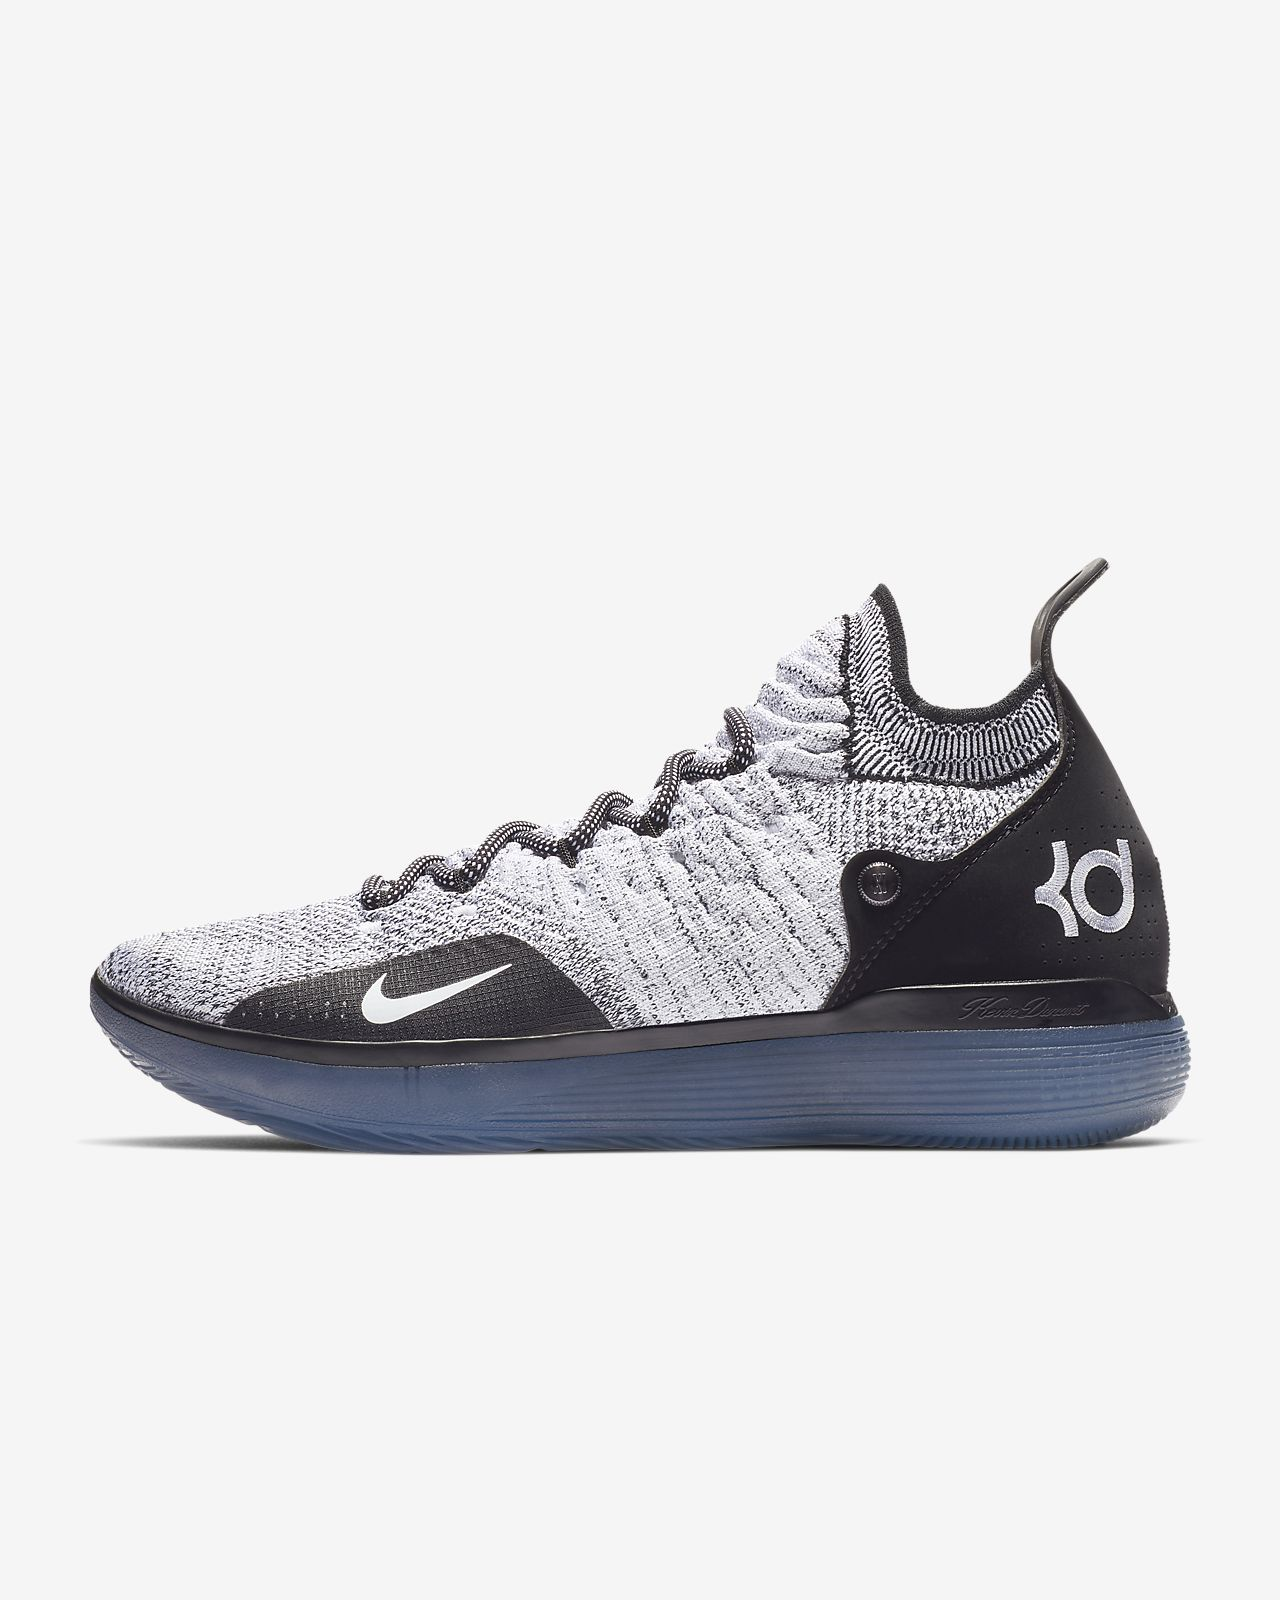 separation shoes 89f5c 9568c Basketball Shoe. Nike Zoom KD11